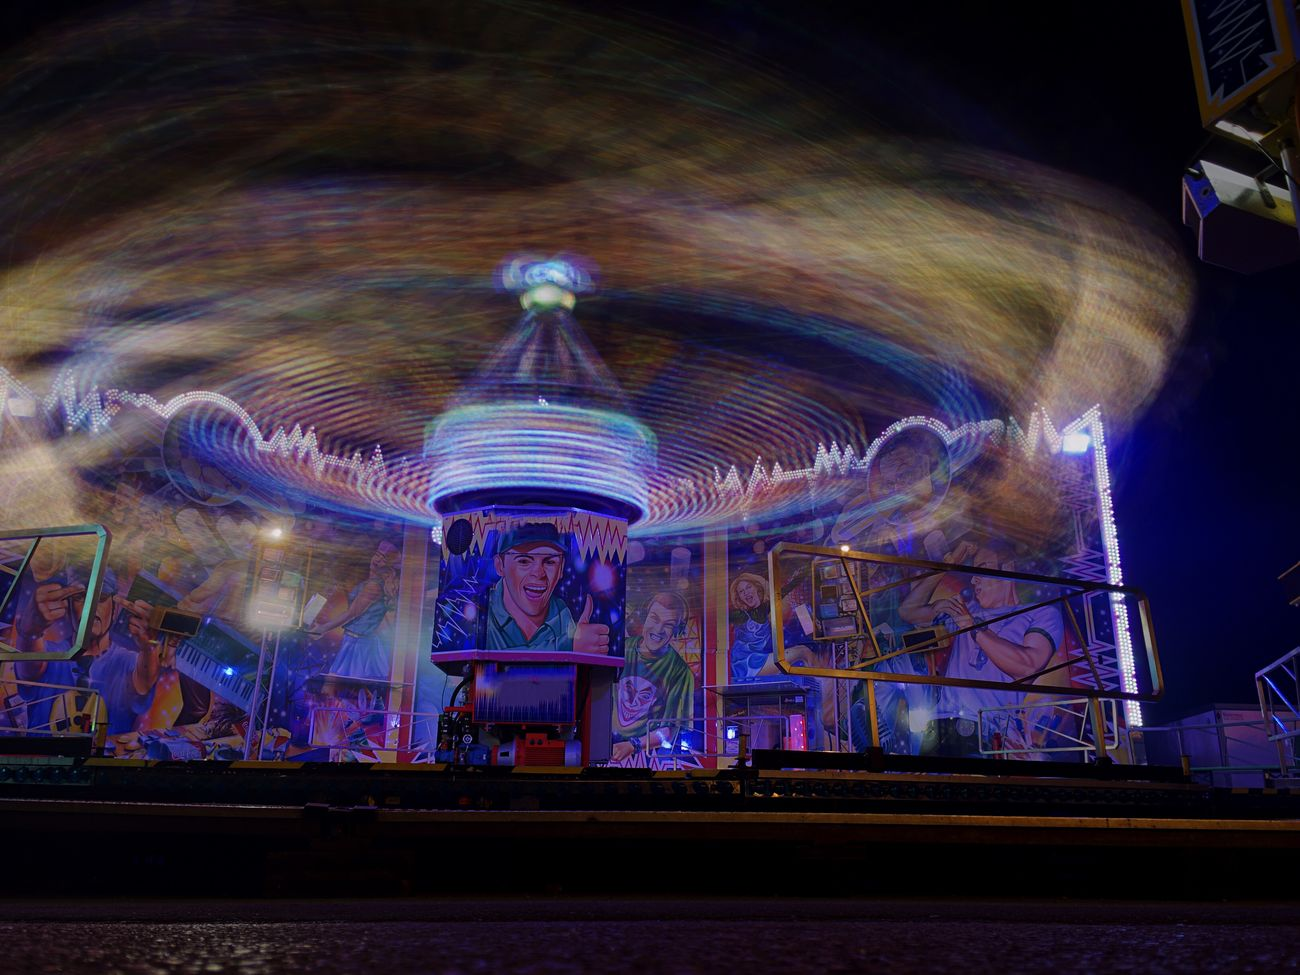 Thrill Rides Light Trails Motion Blur Concentric Circles